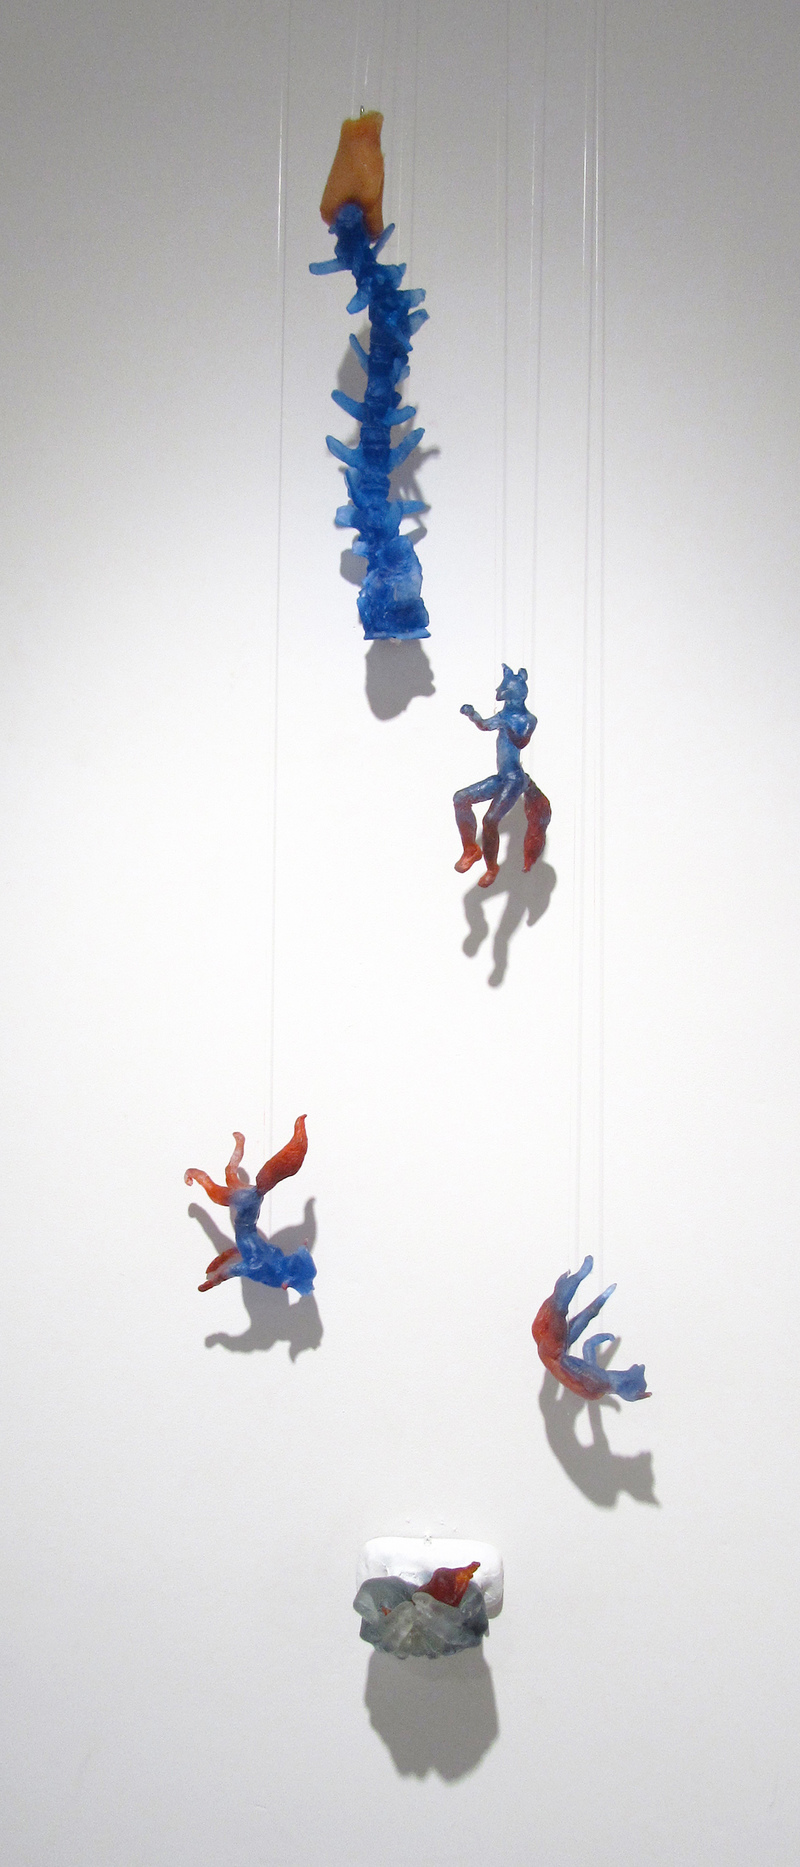 Julie Carrasco 狐付き (kitsunetsuki) Glass, rubber, oil paint